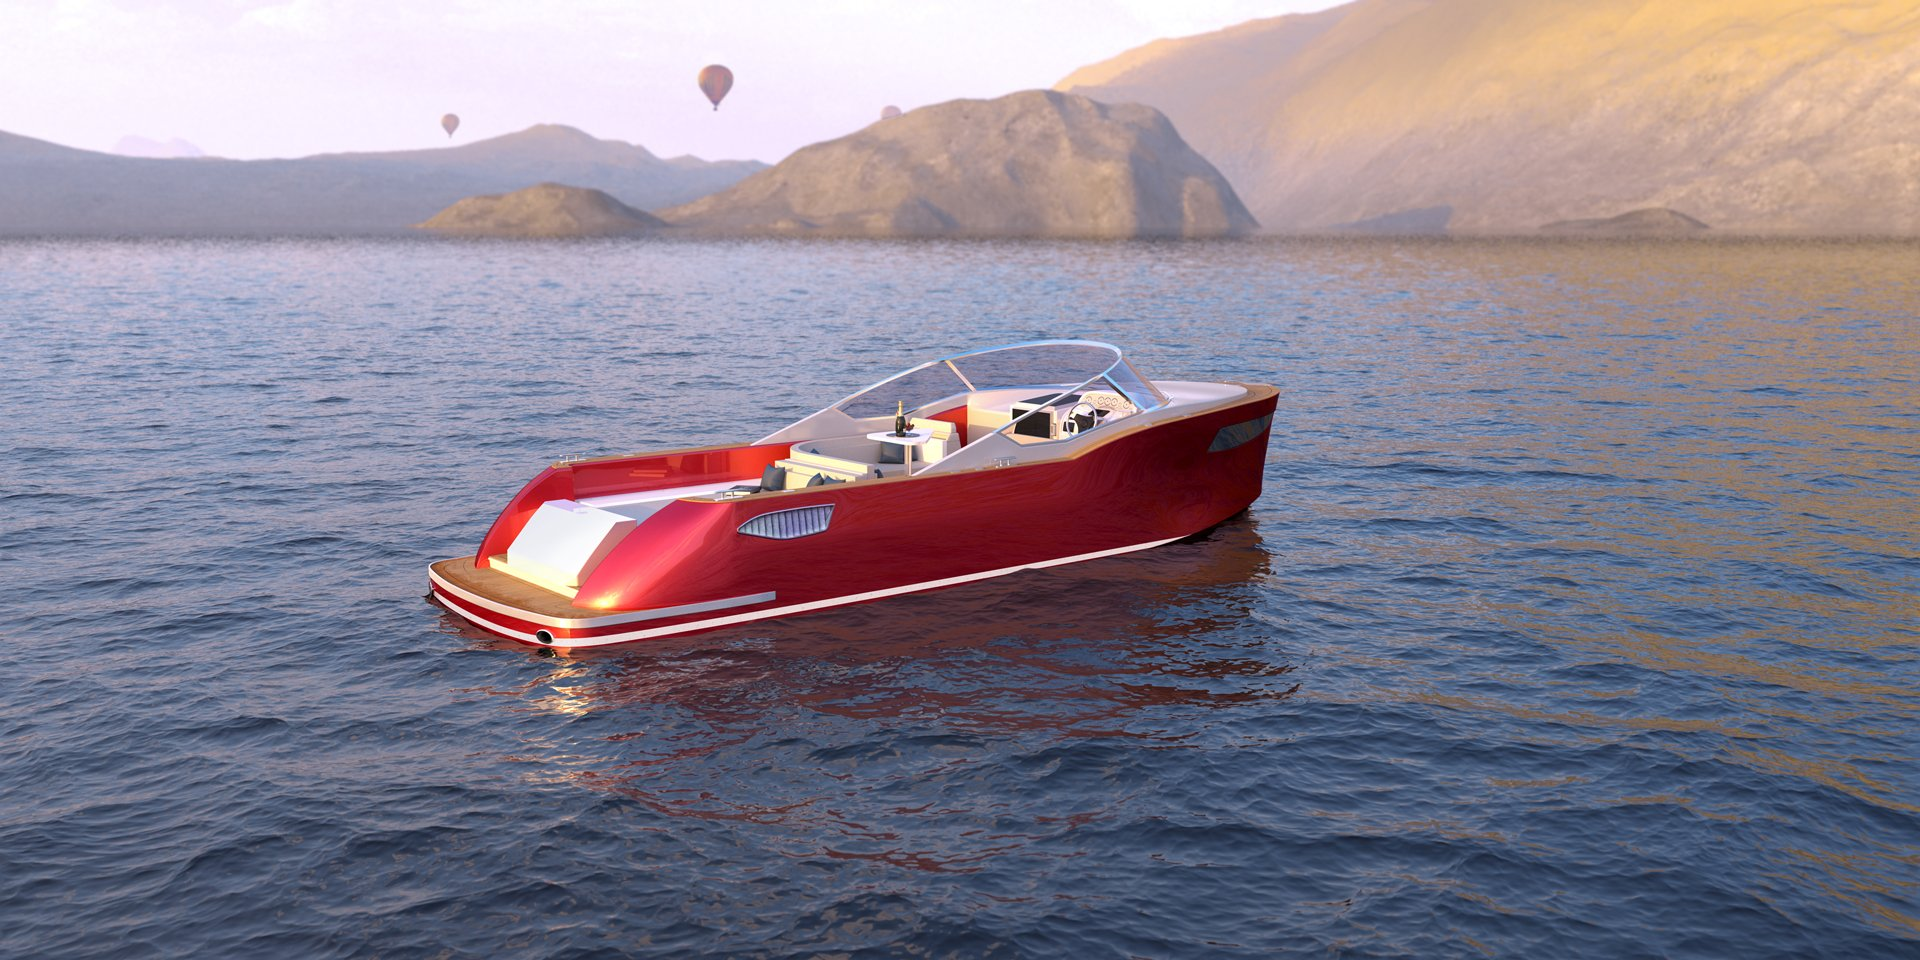 3d-configurator-online-Cayos-Render-boat-side-view